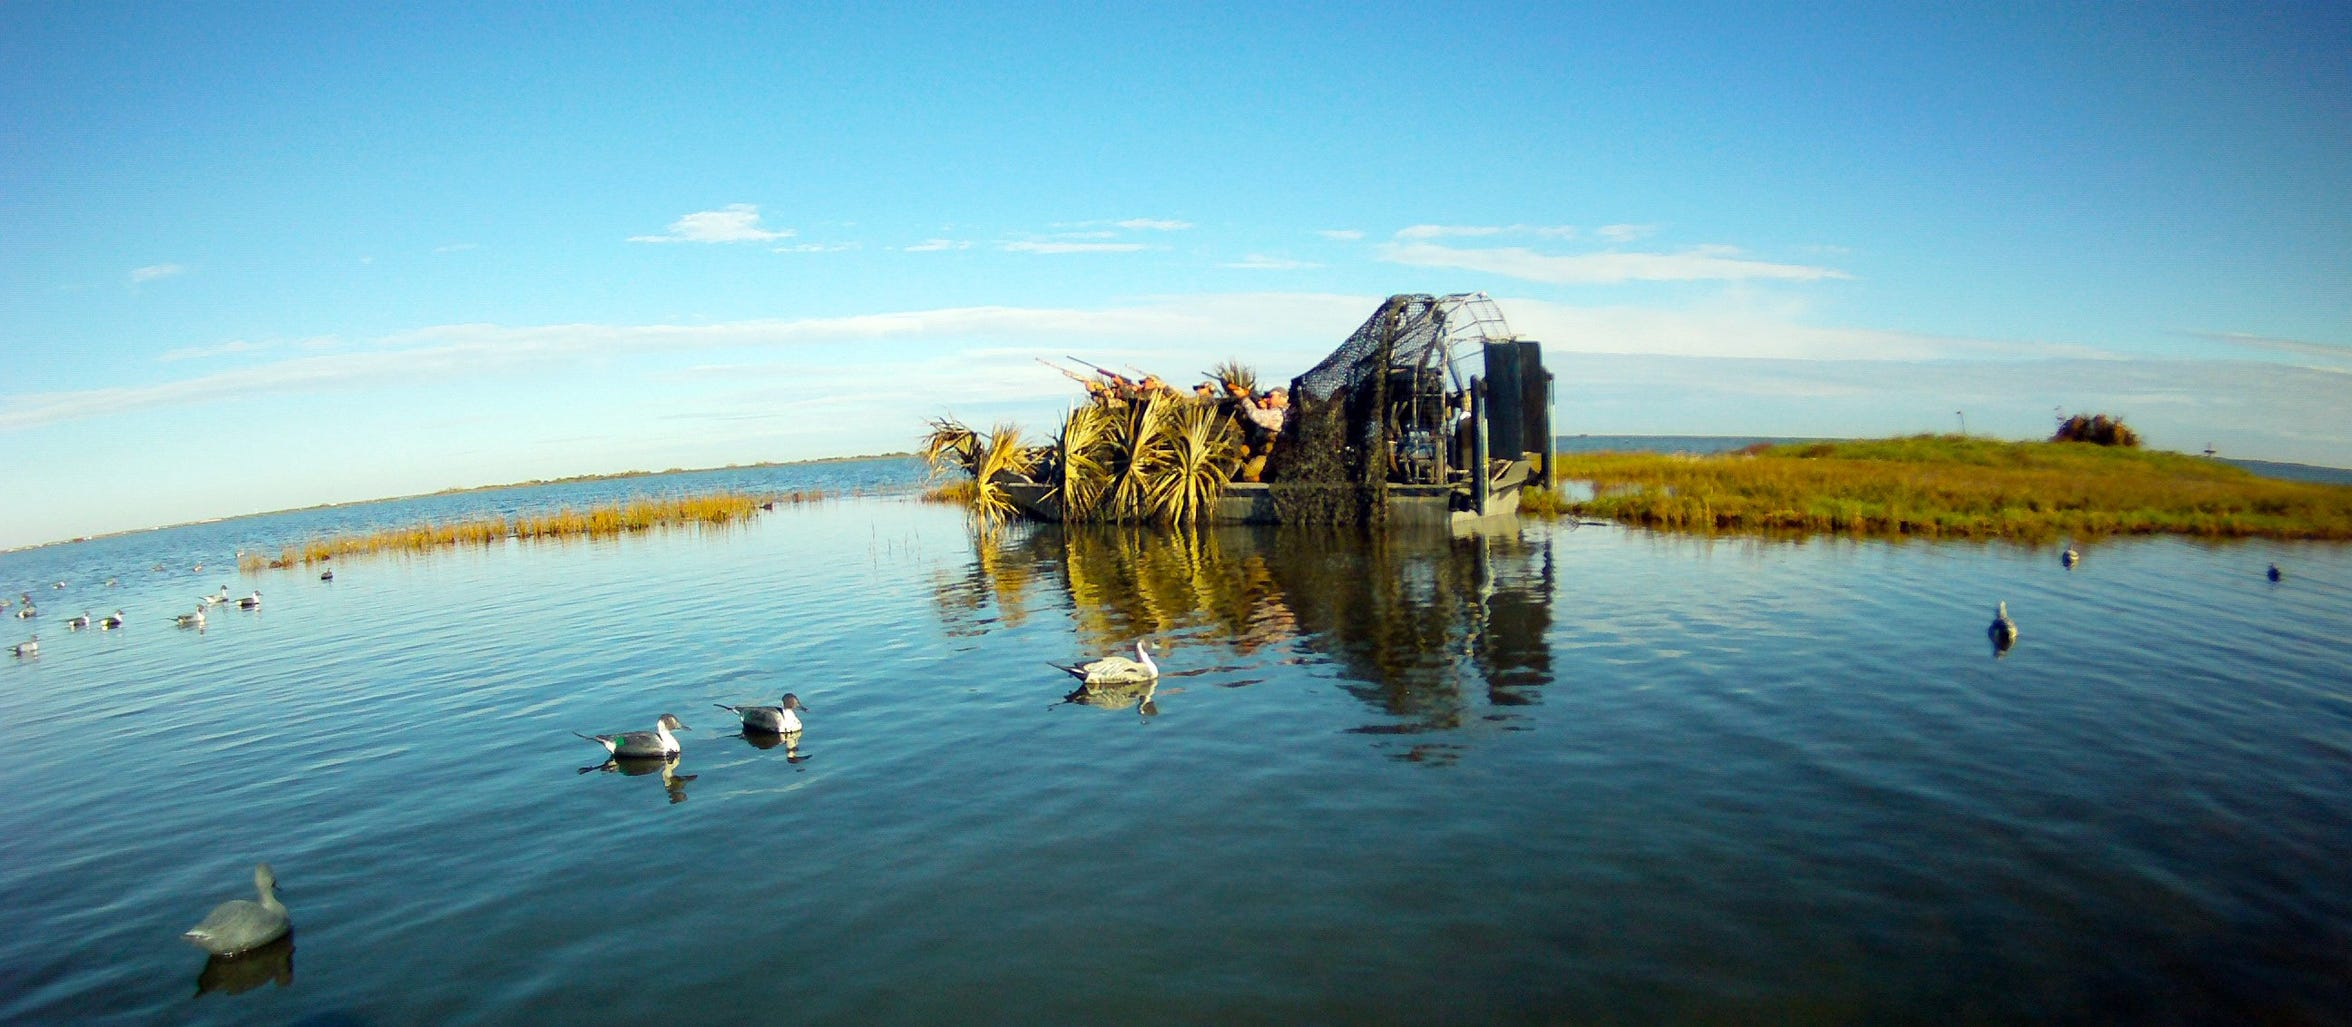 It's okay to hunt ducks from an anchored boat.